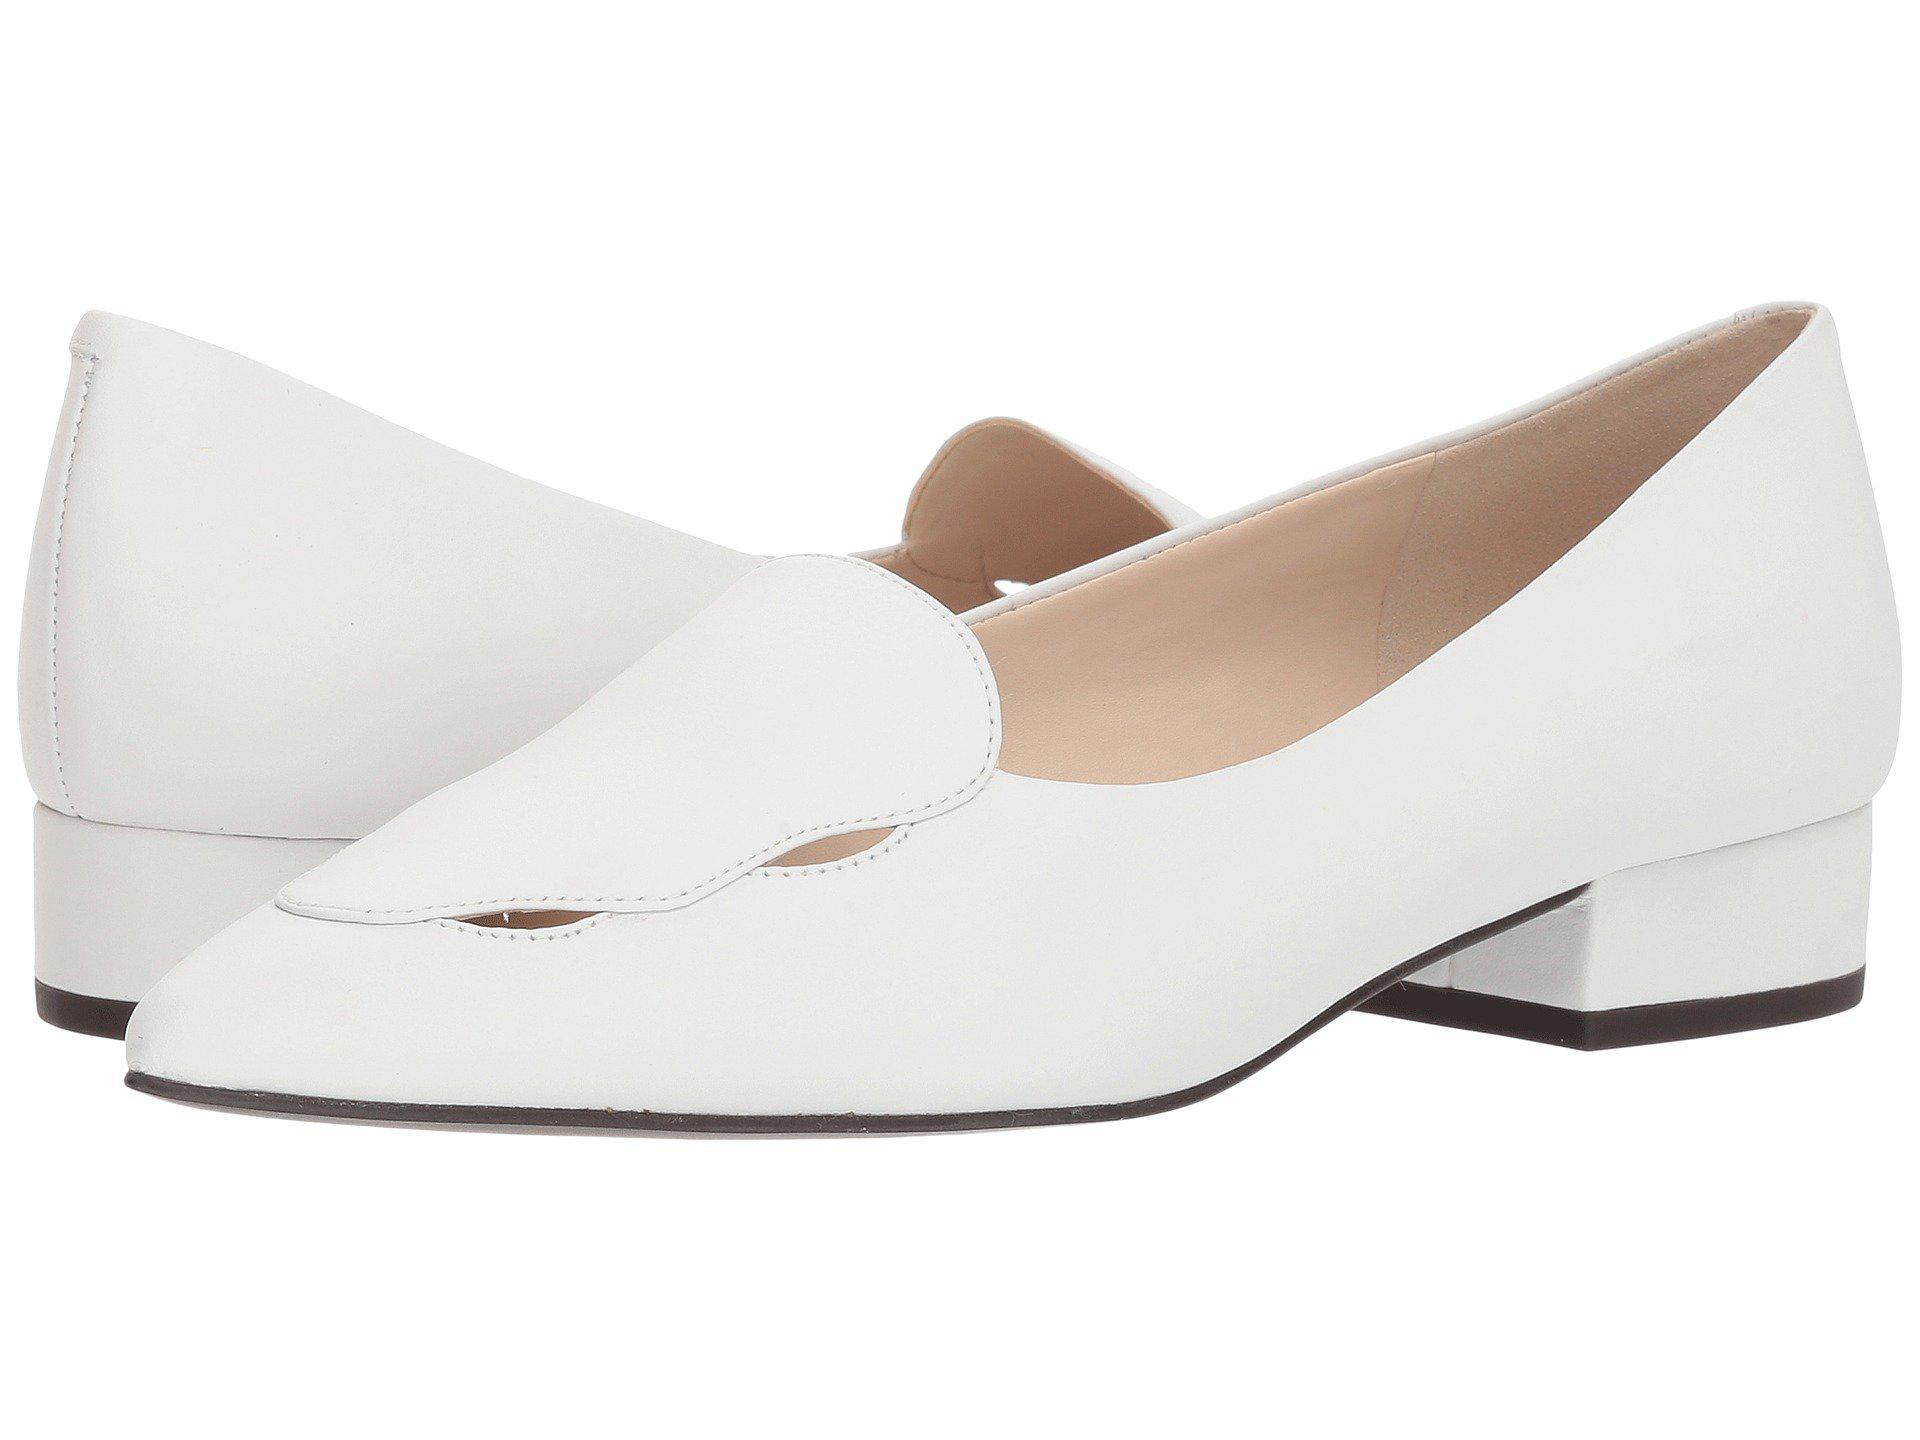 055baa75758 Lyst - Cole Haan G.os Leah Skimmer in White - Save 23%